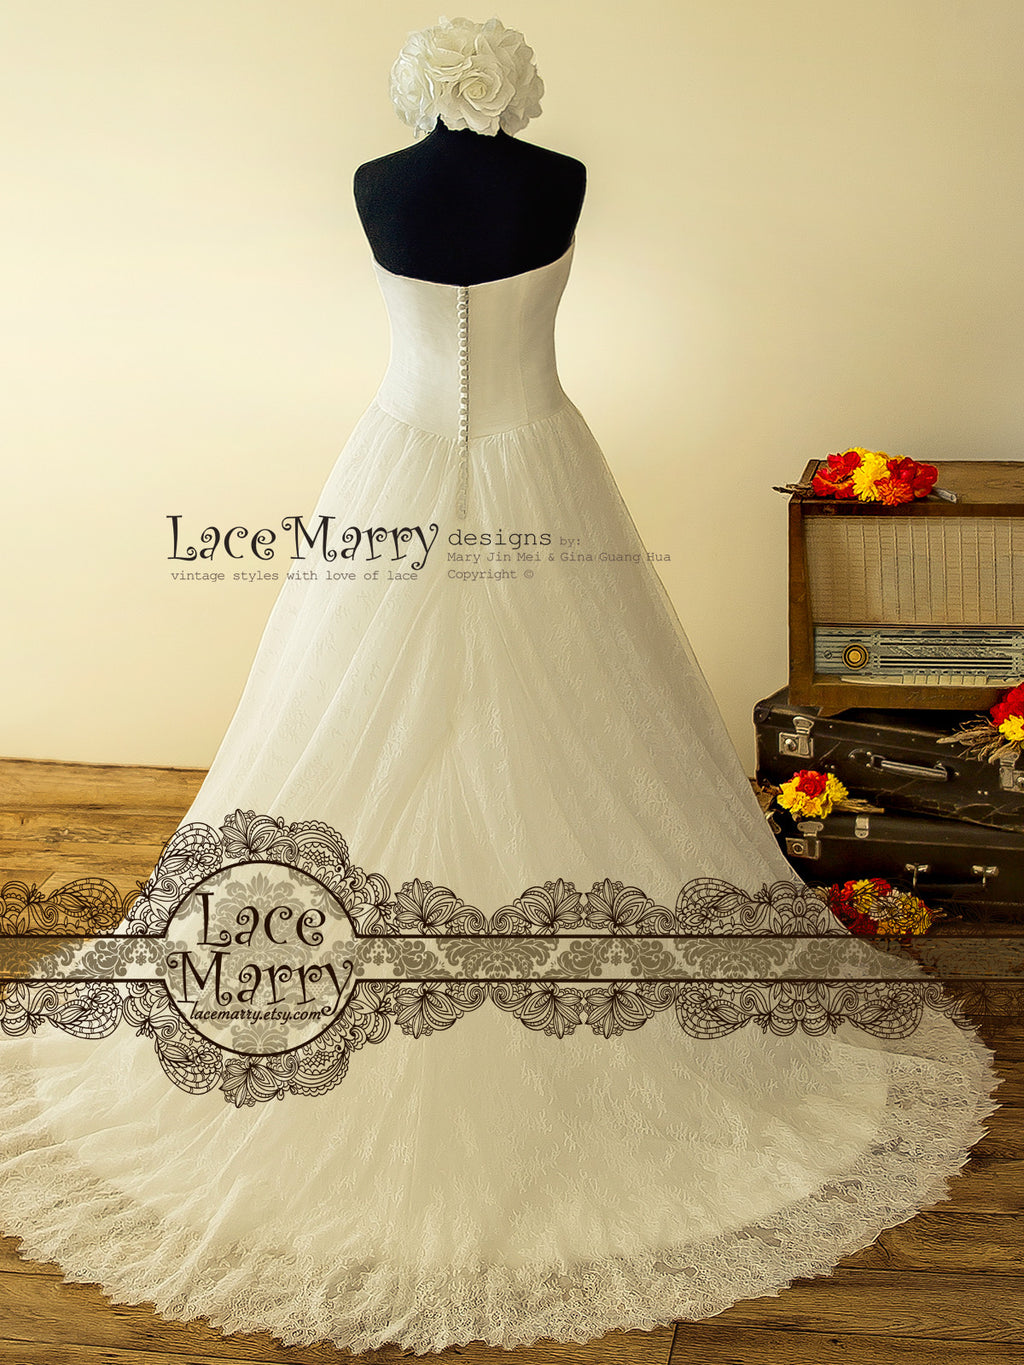 Lacemarry dresses on sale